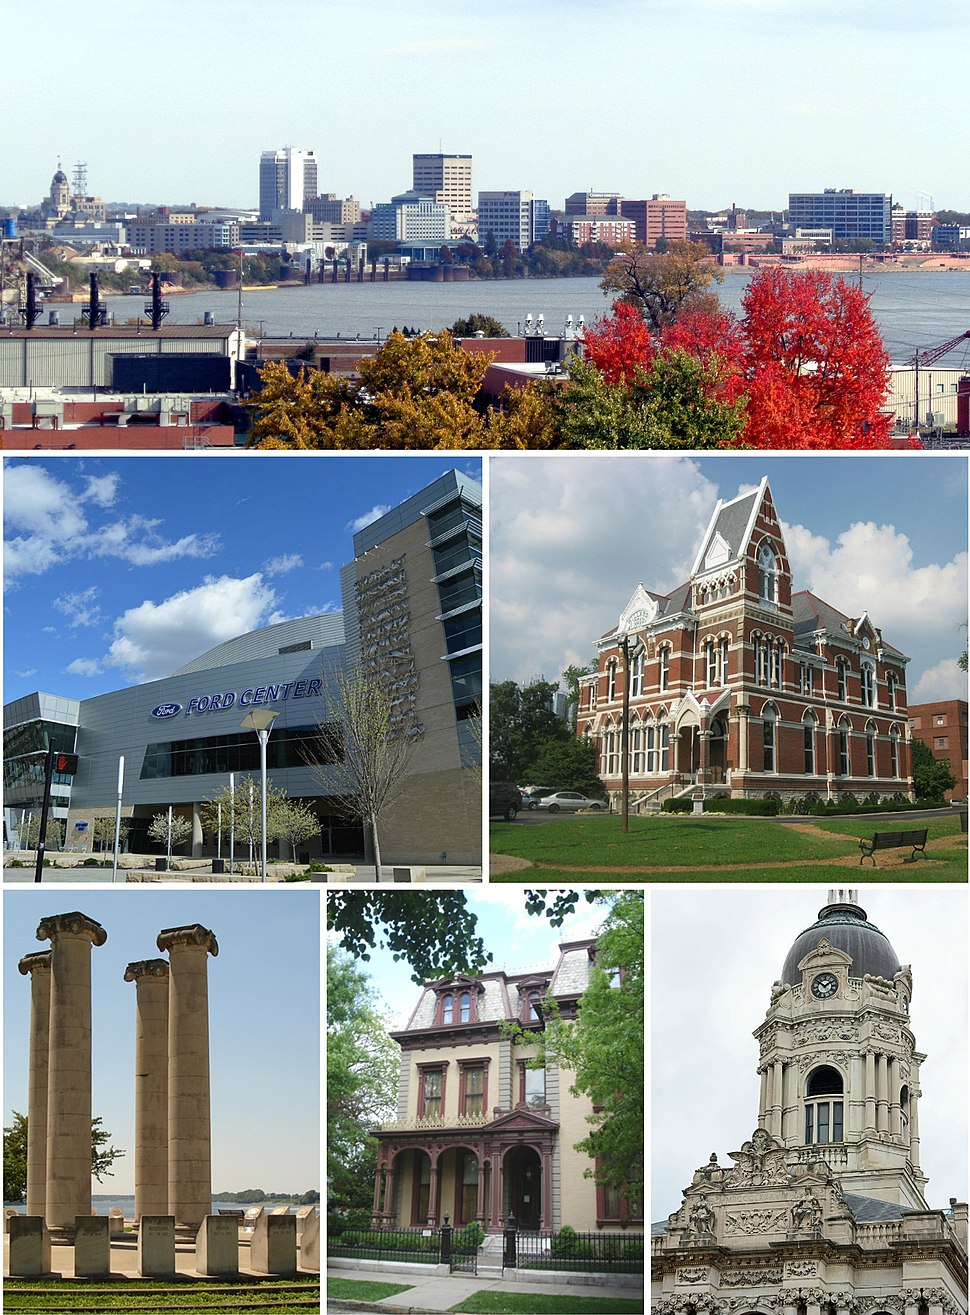 Top to bottom, left to right: Dress Plaza on the Evansville Riverfront, Ford Center, Willard Library, Four Freedoms Monument, Reitz Home, Old Vanderburgh County Courthouse